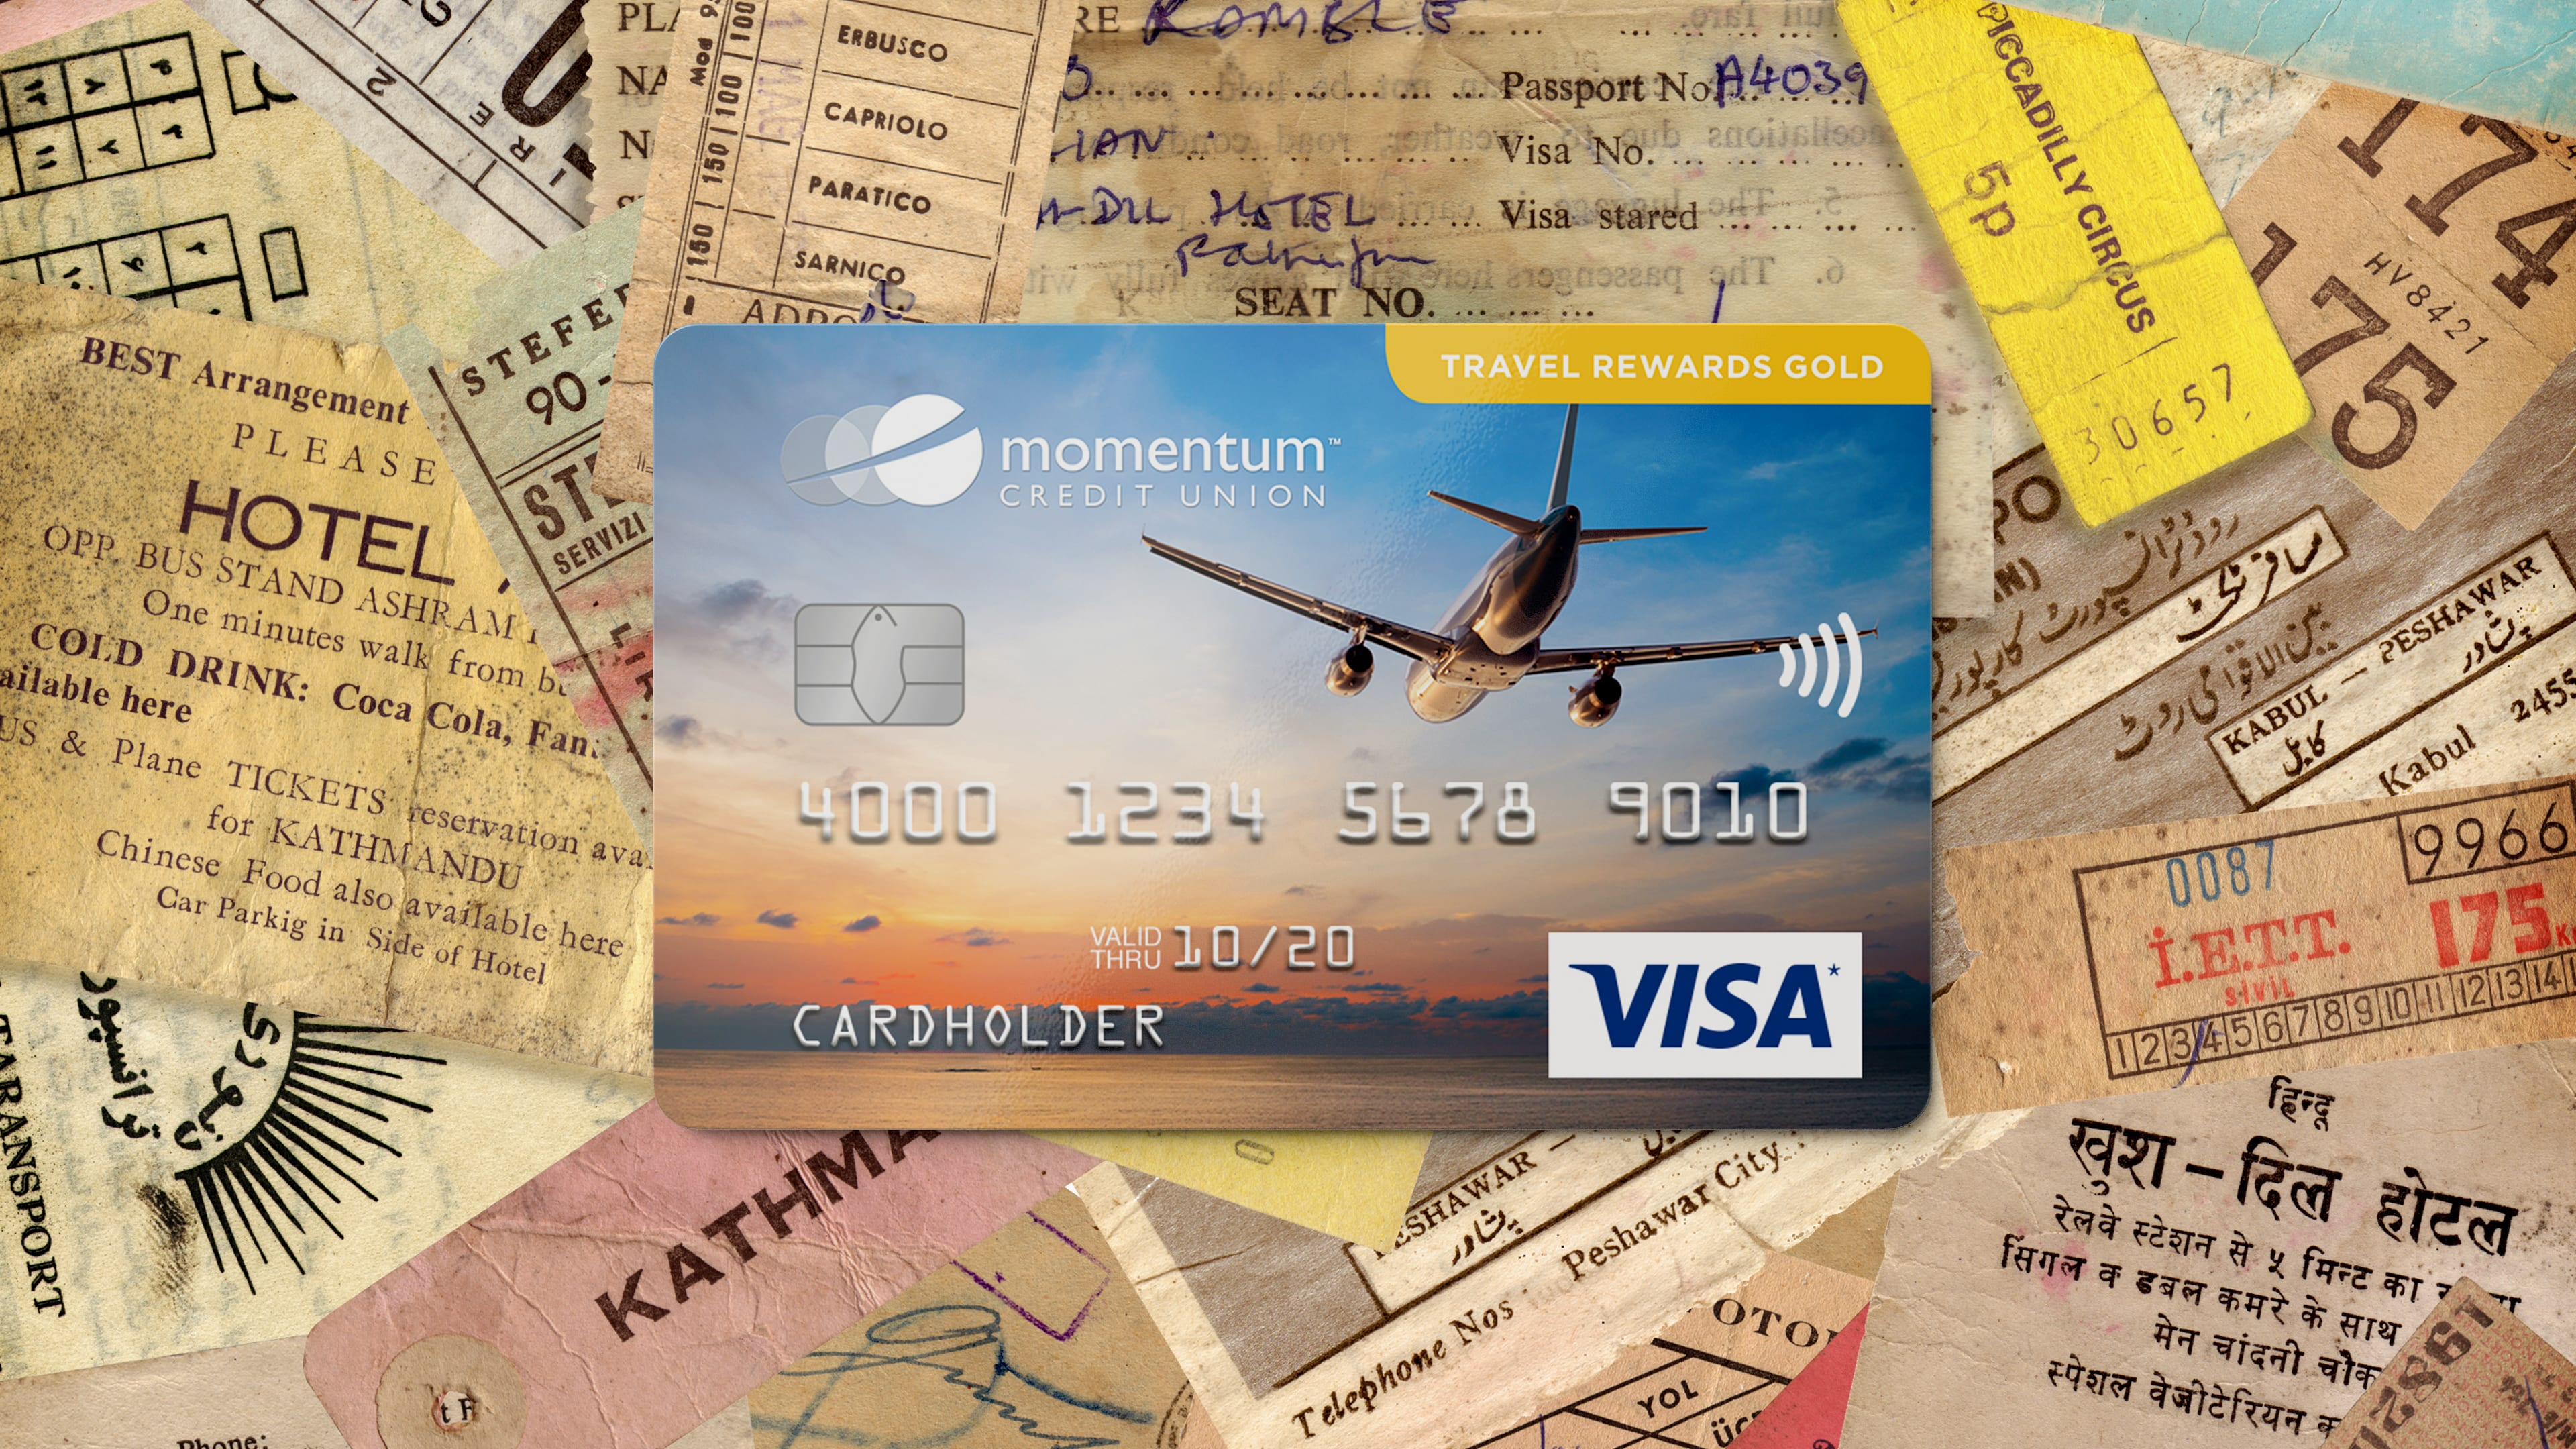 Momentum Visa Travel Rewards Gold